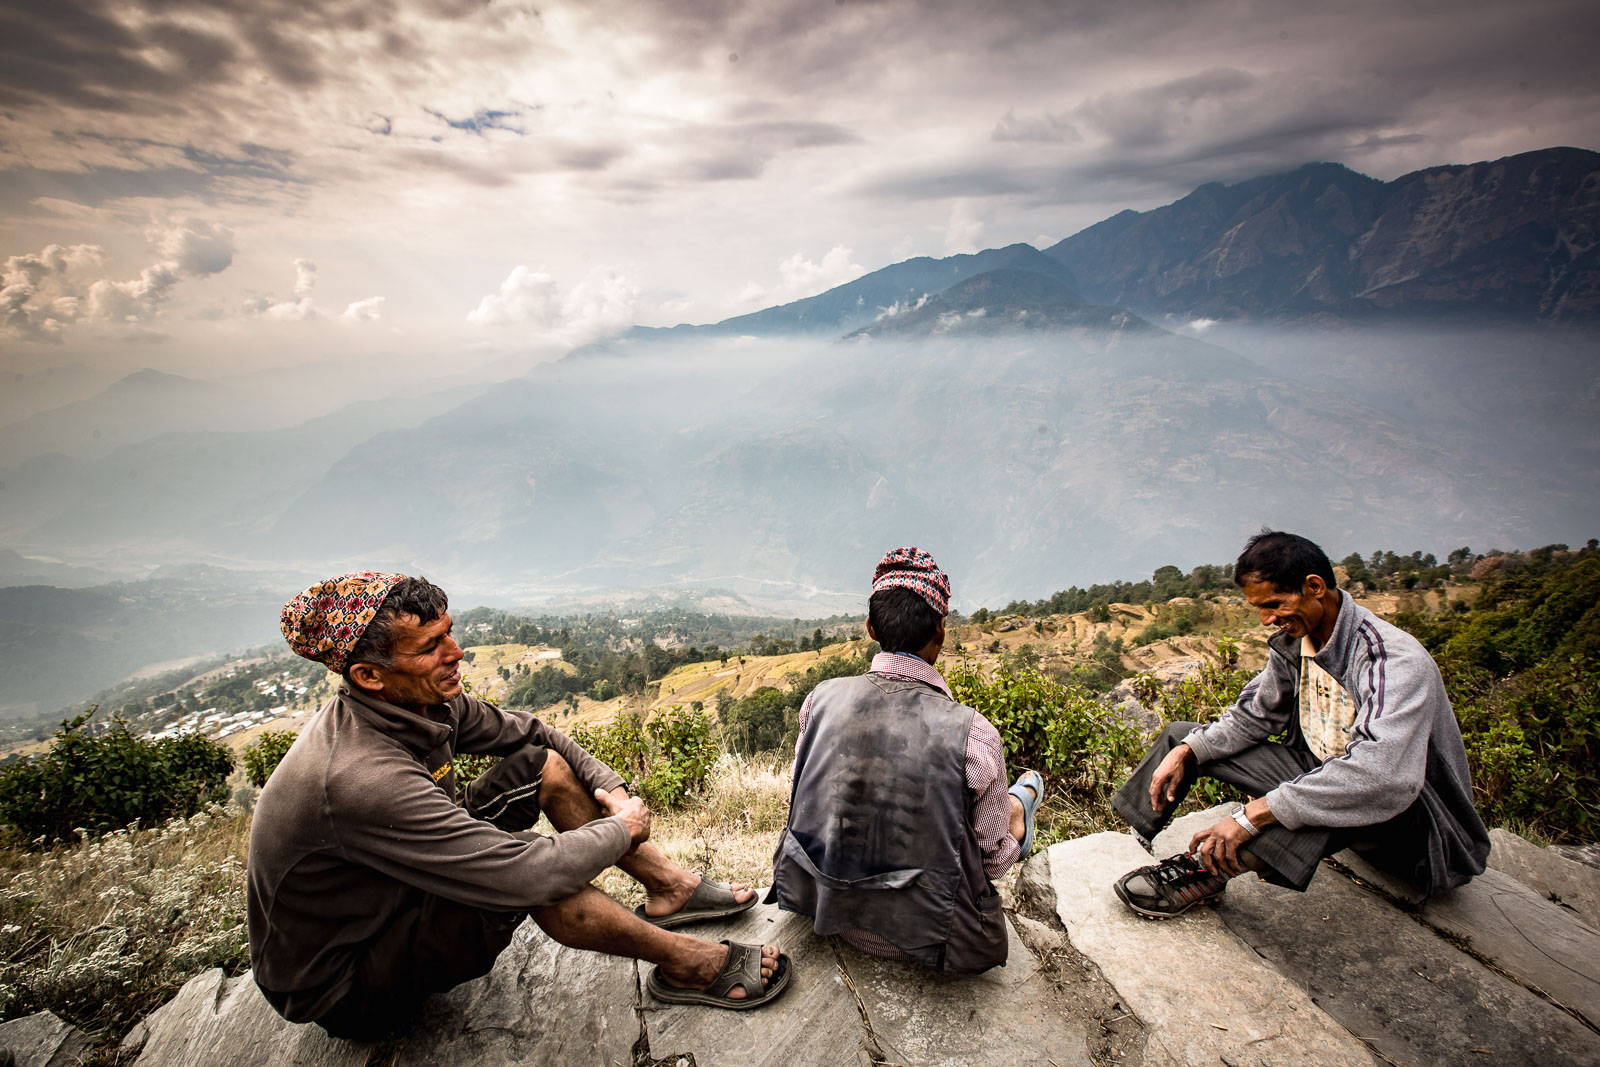 Our porters taking a well-earned rest